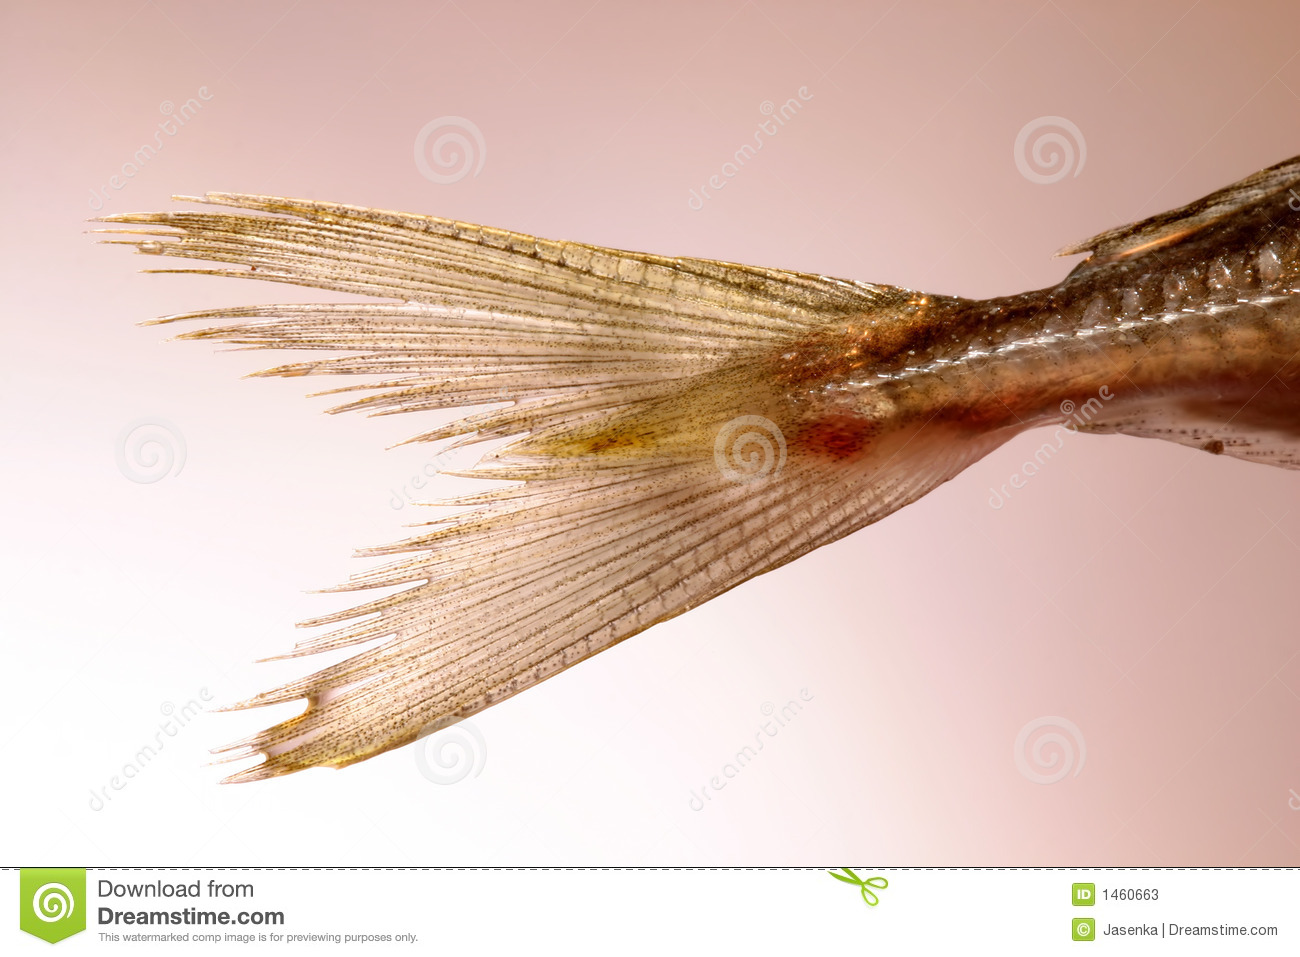 Fish tail stock photos image 1460663 for Fish and tails